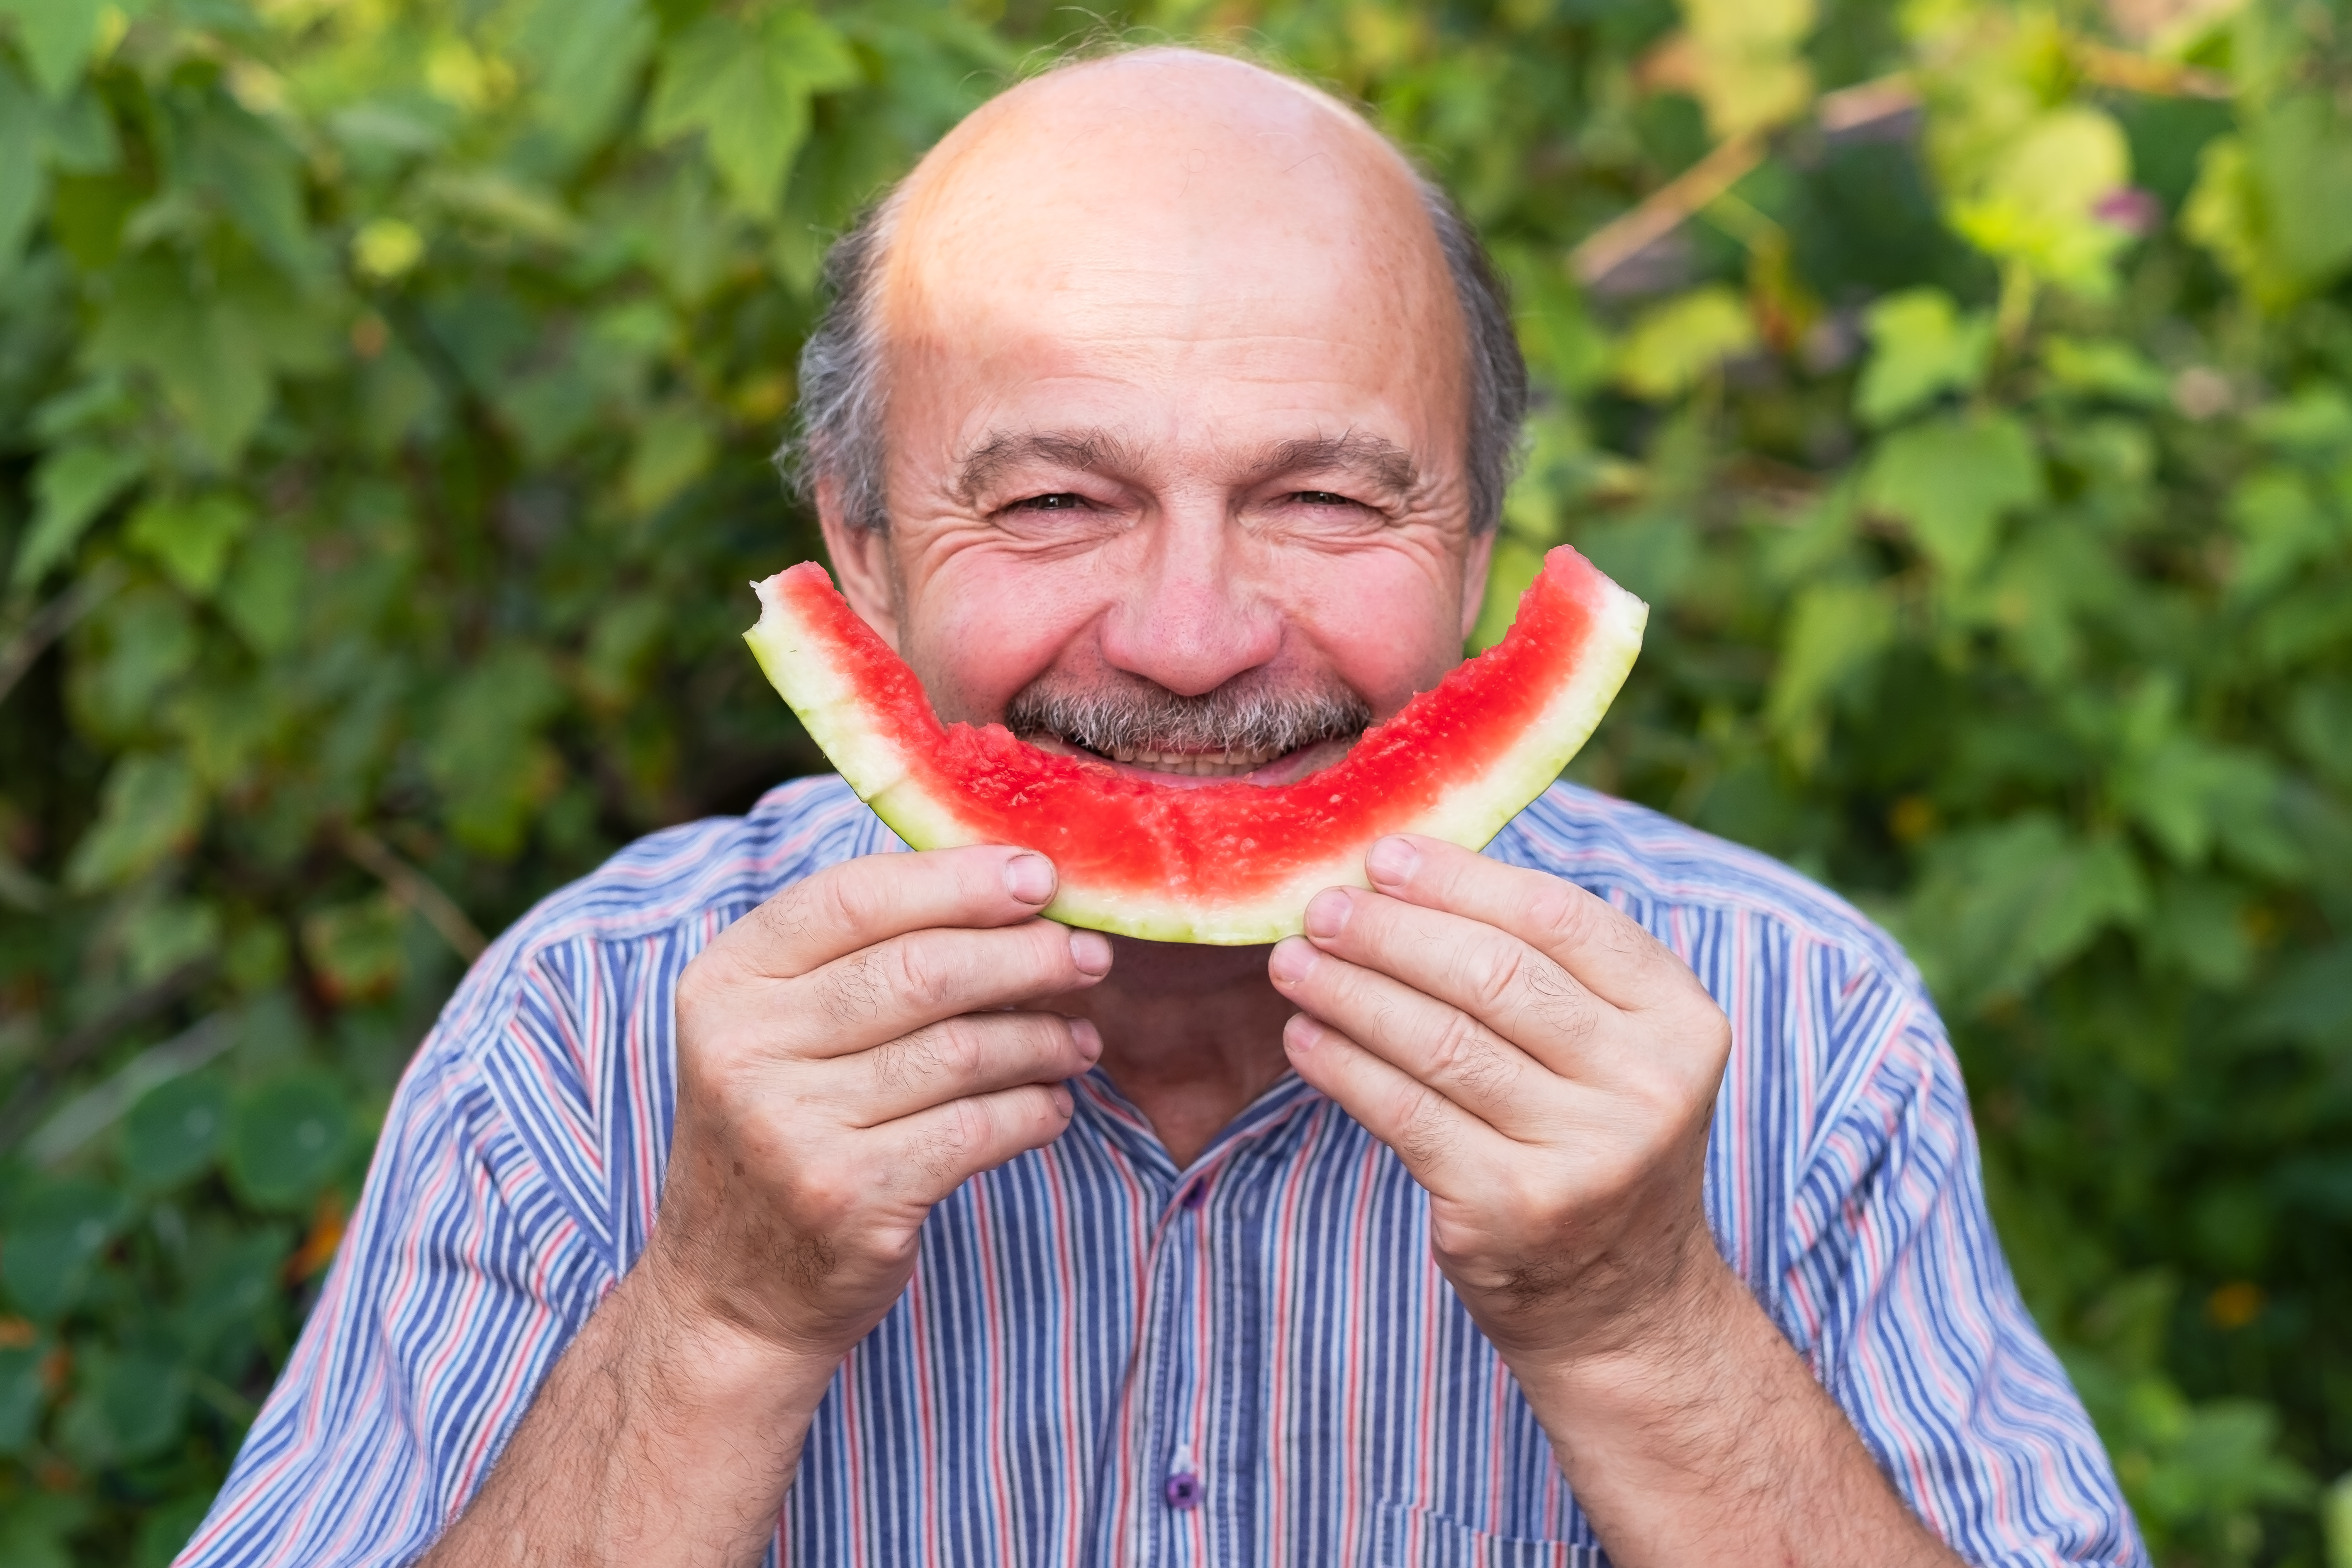 What Are the Top Two Nutrition Tips for Seniors?